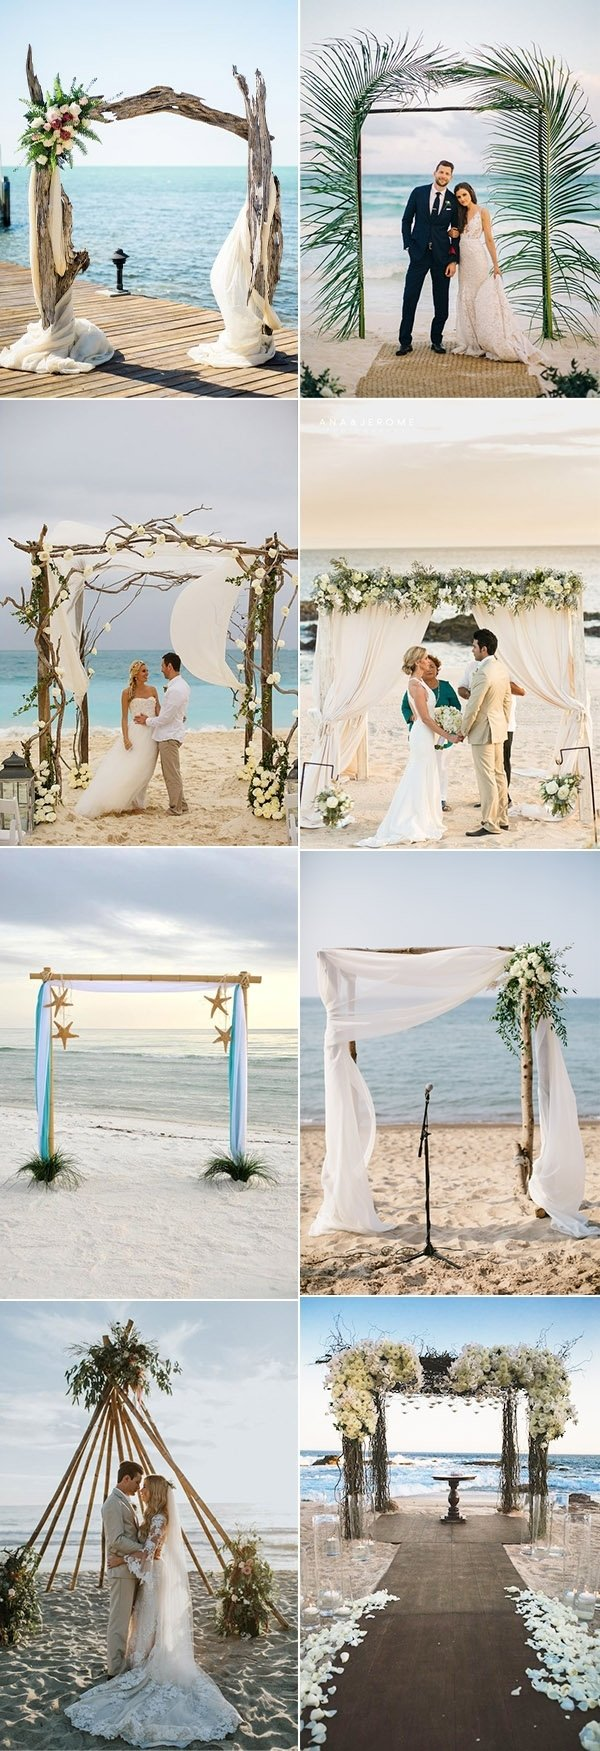 10 Wonderful Ideas For A Beach Wedding